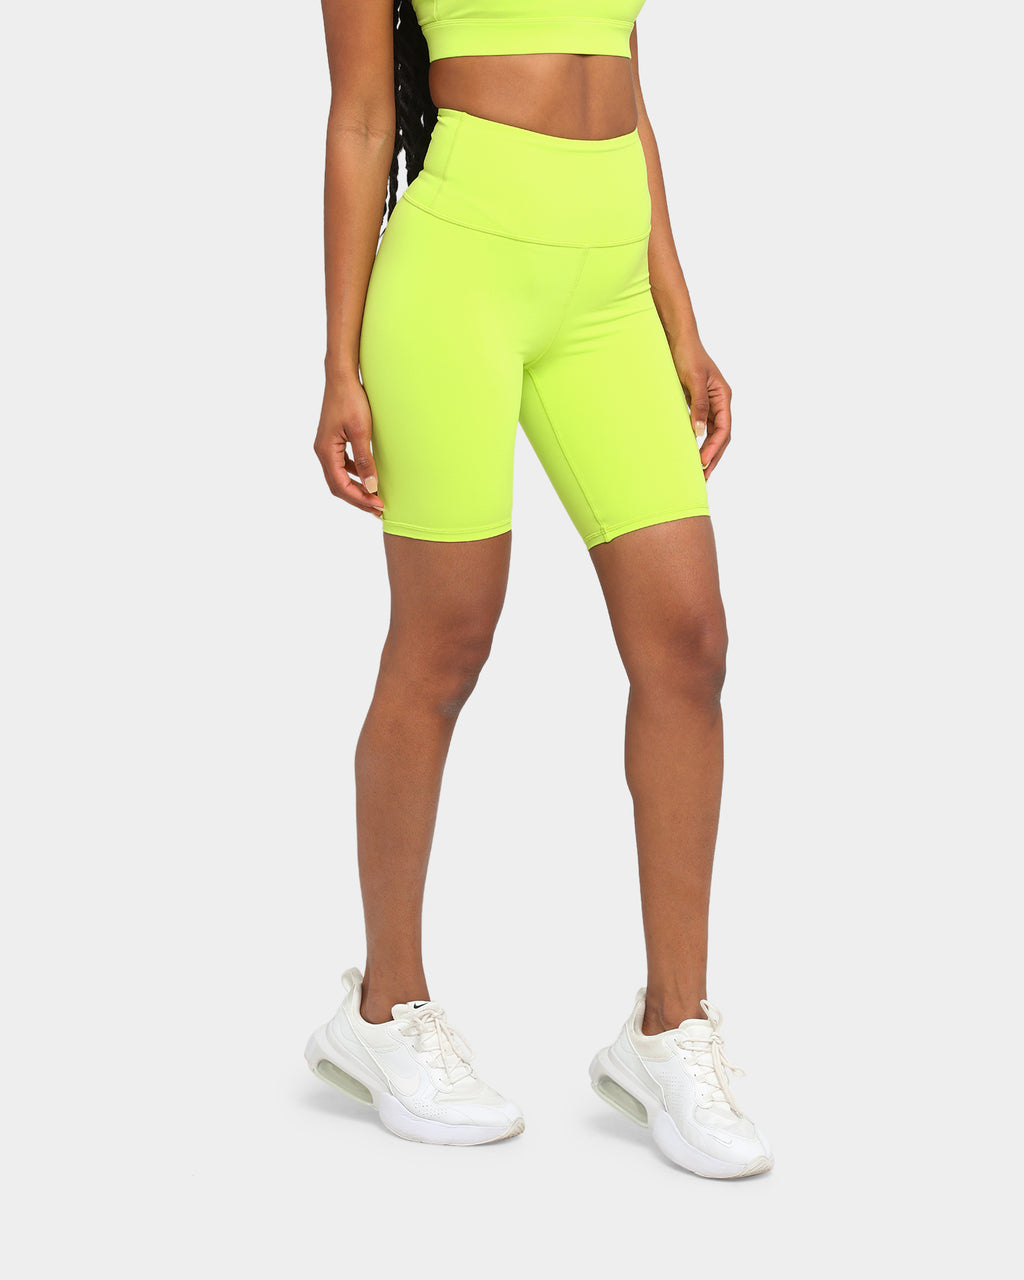 Baseline Ultra Bright Short Tight Citrus